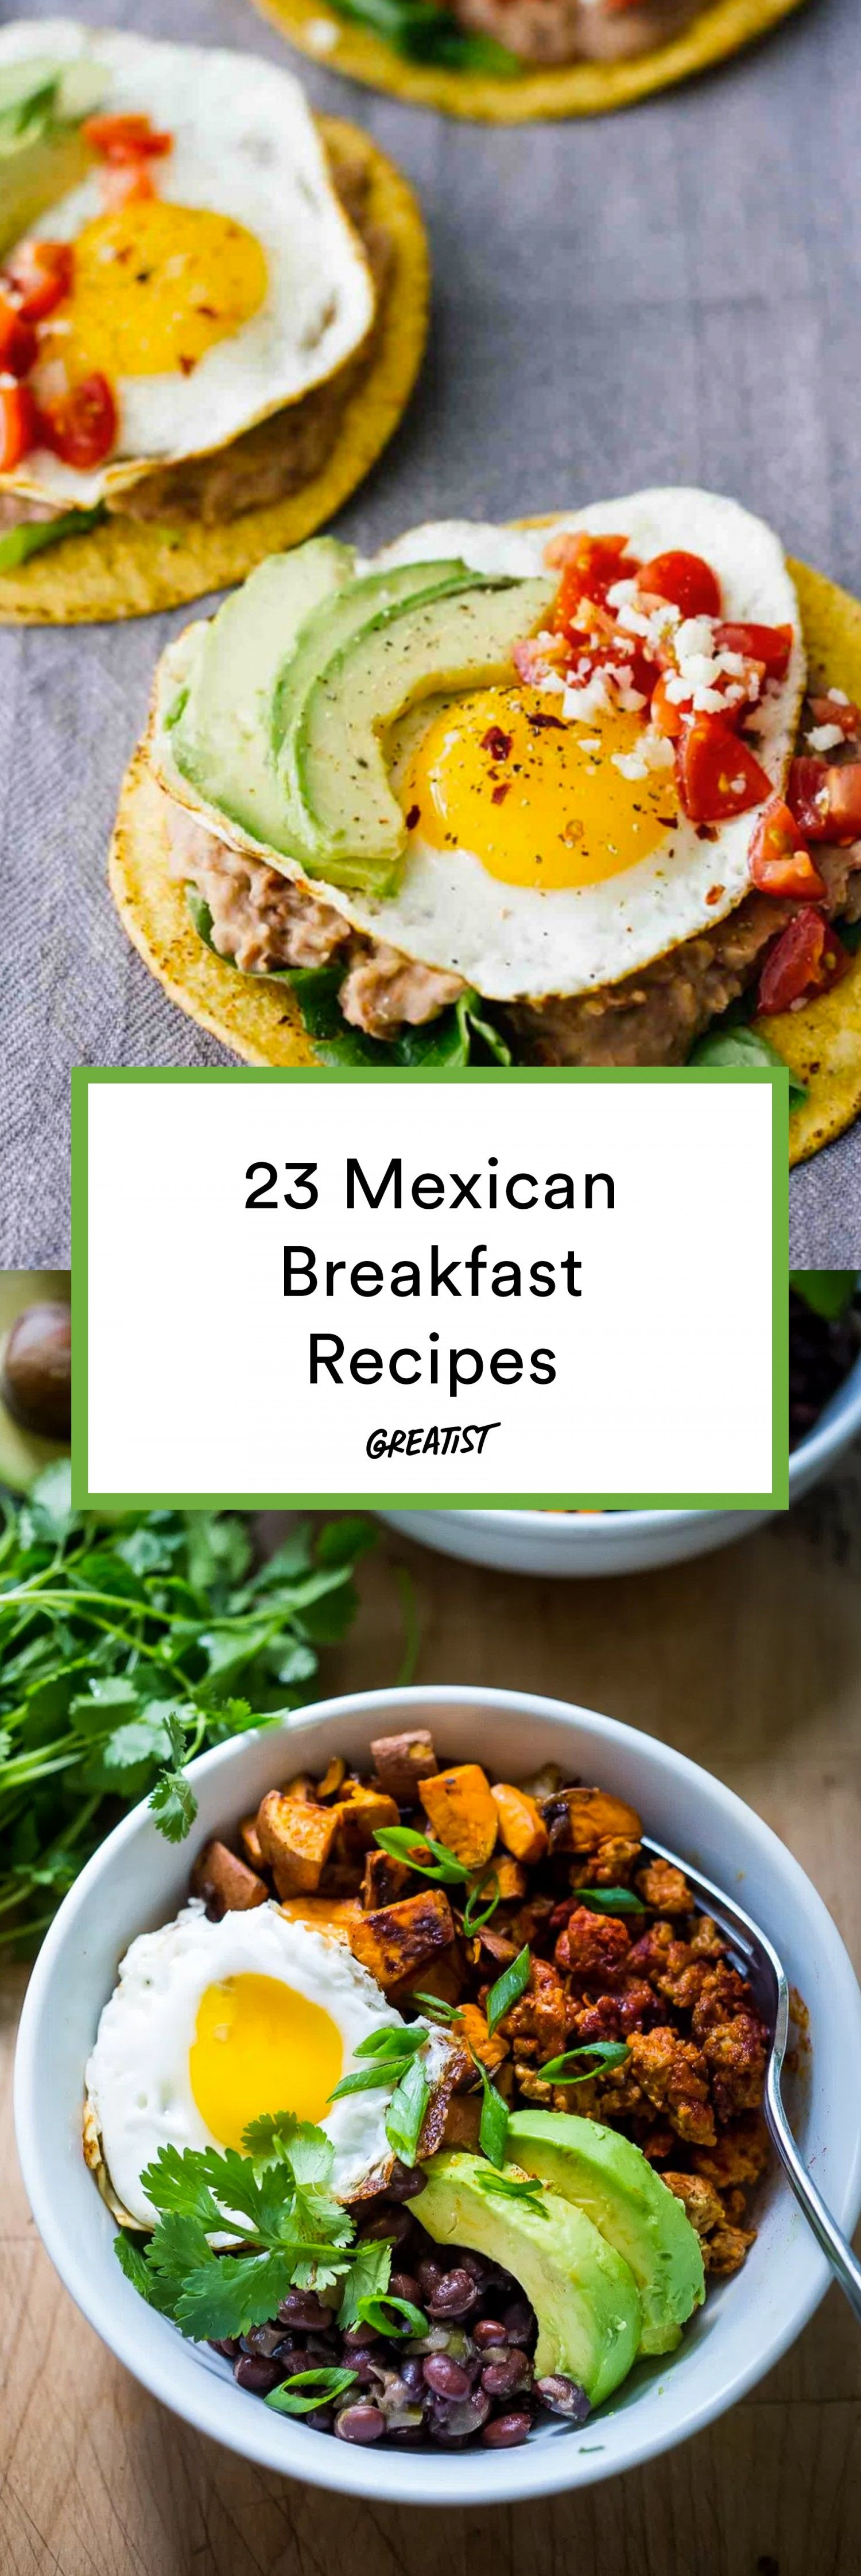 Photo of 23 Mexican Breakfast Recipes That Aren't All Burritos